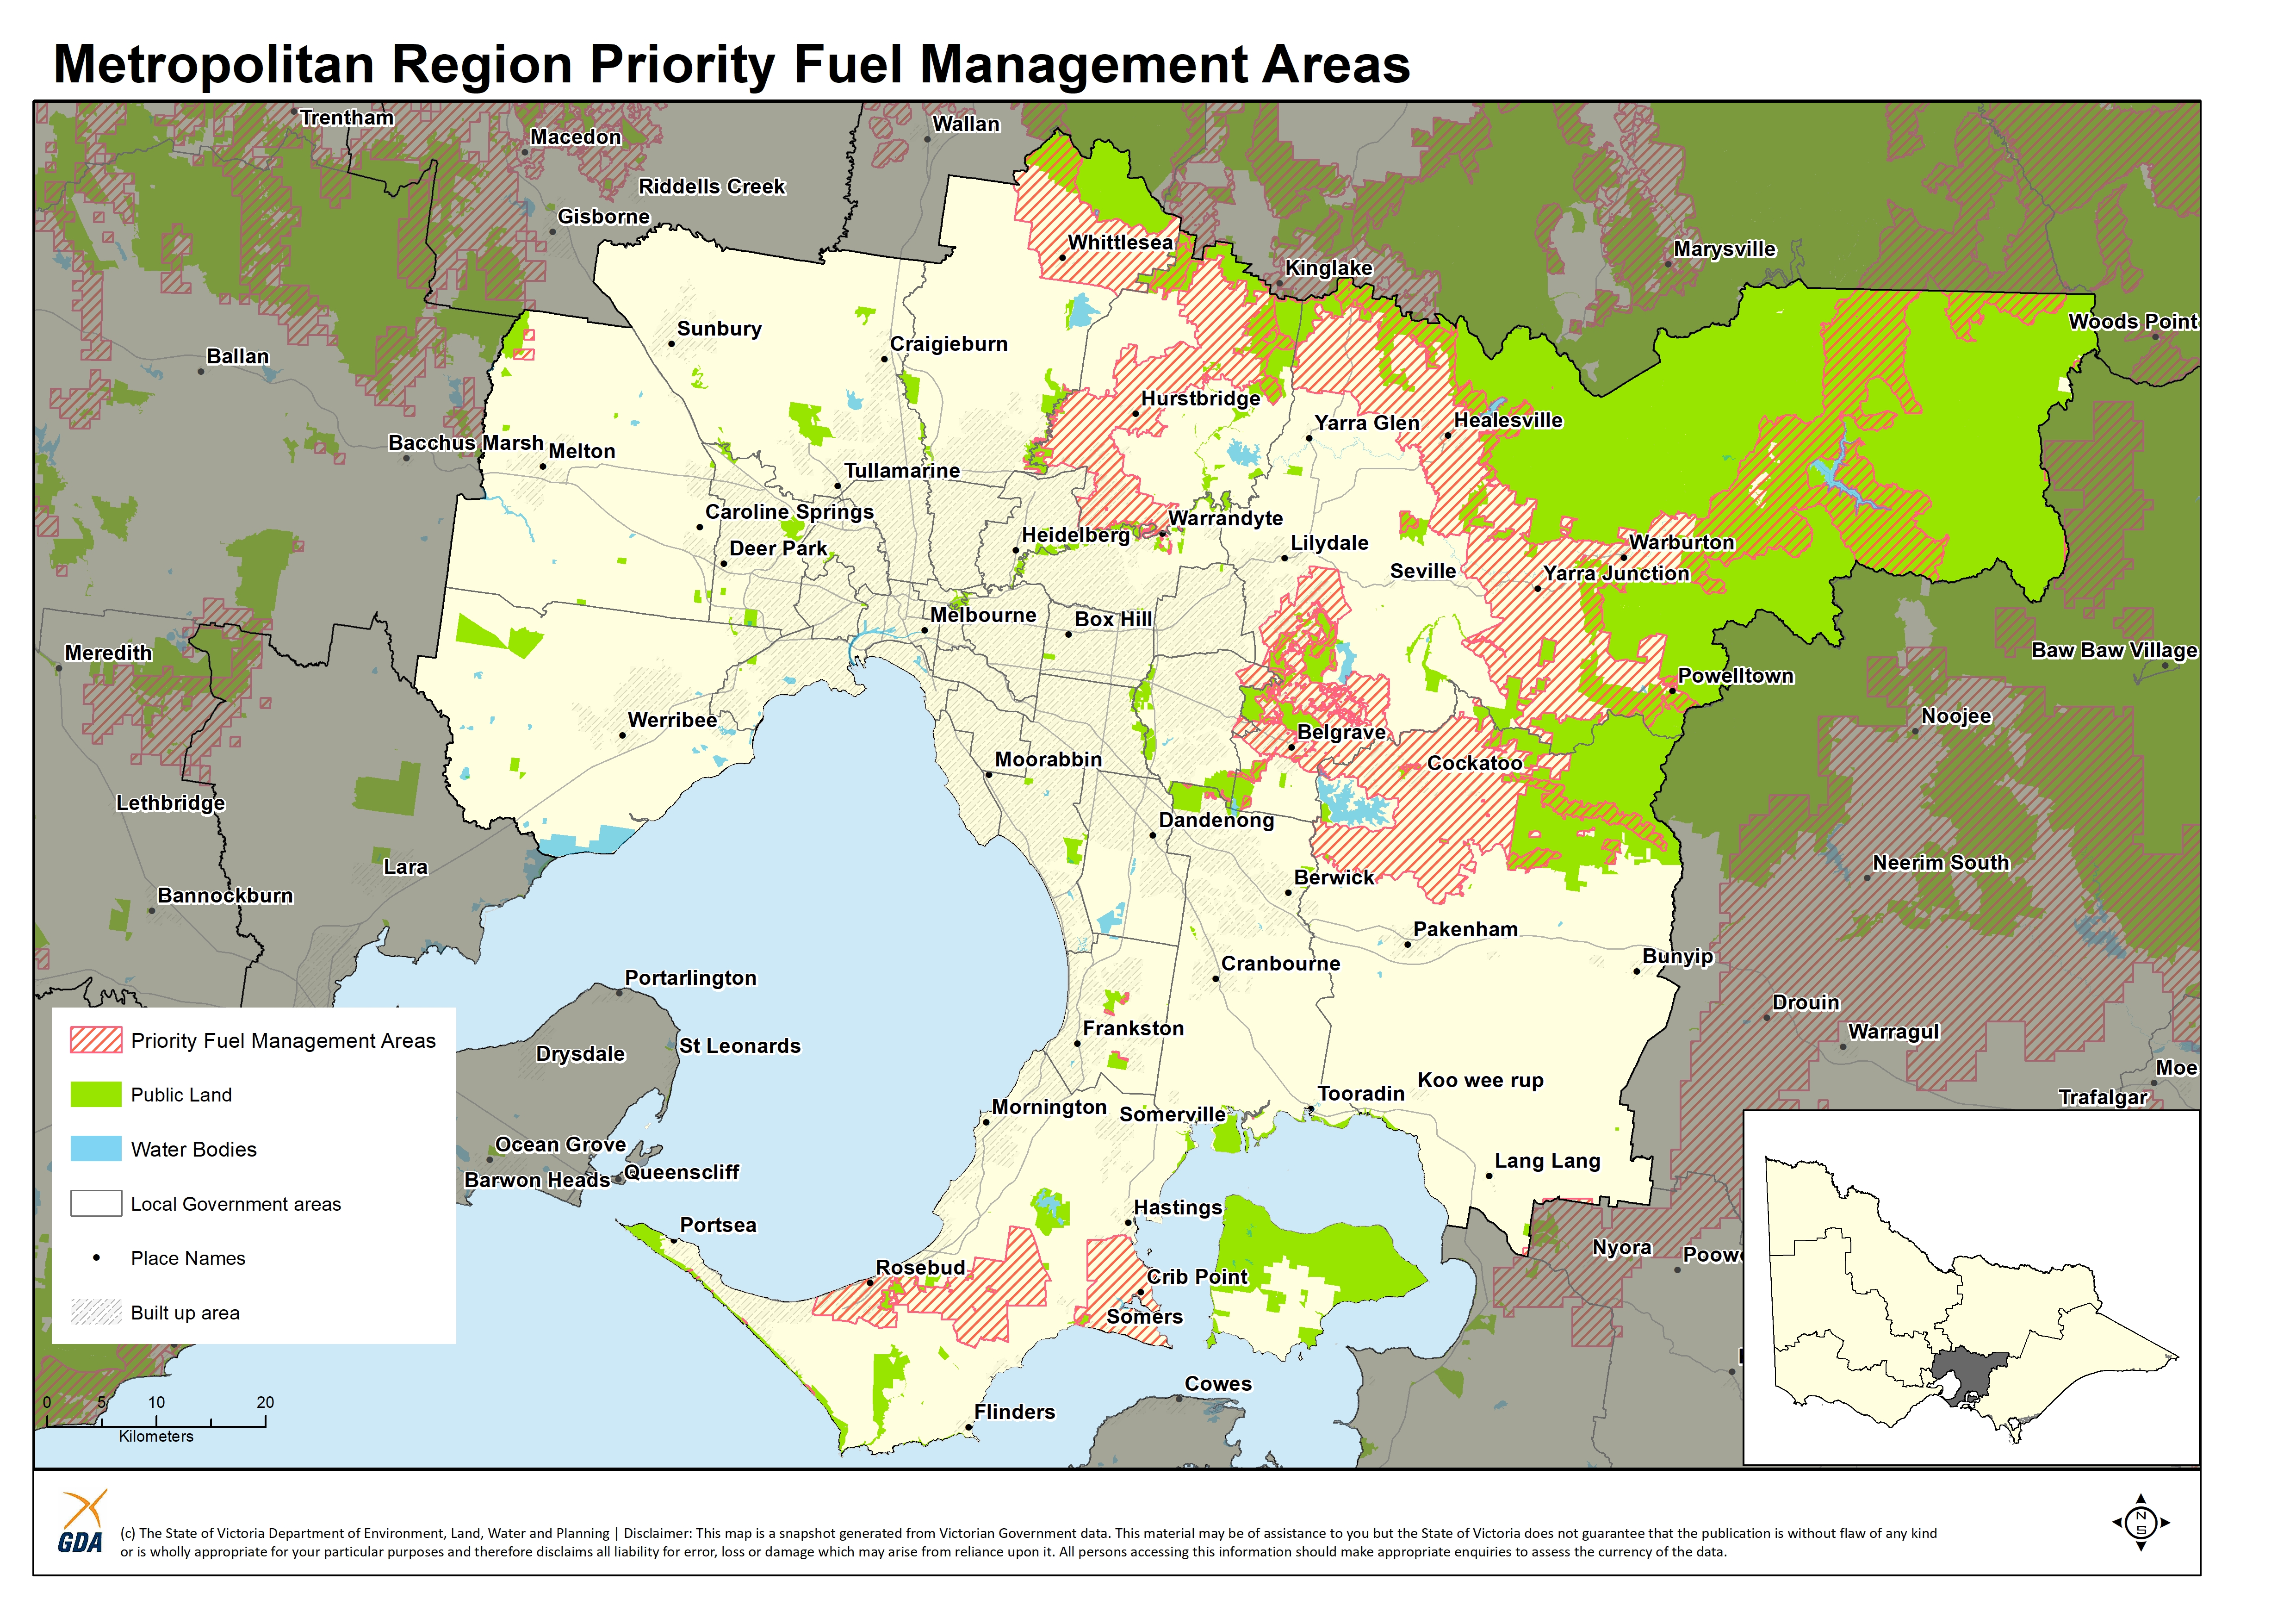 A map of the Priority Fuel Management Areas in the Metropolitan Region